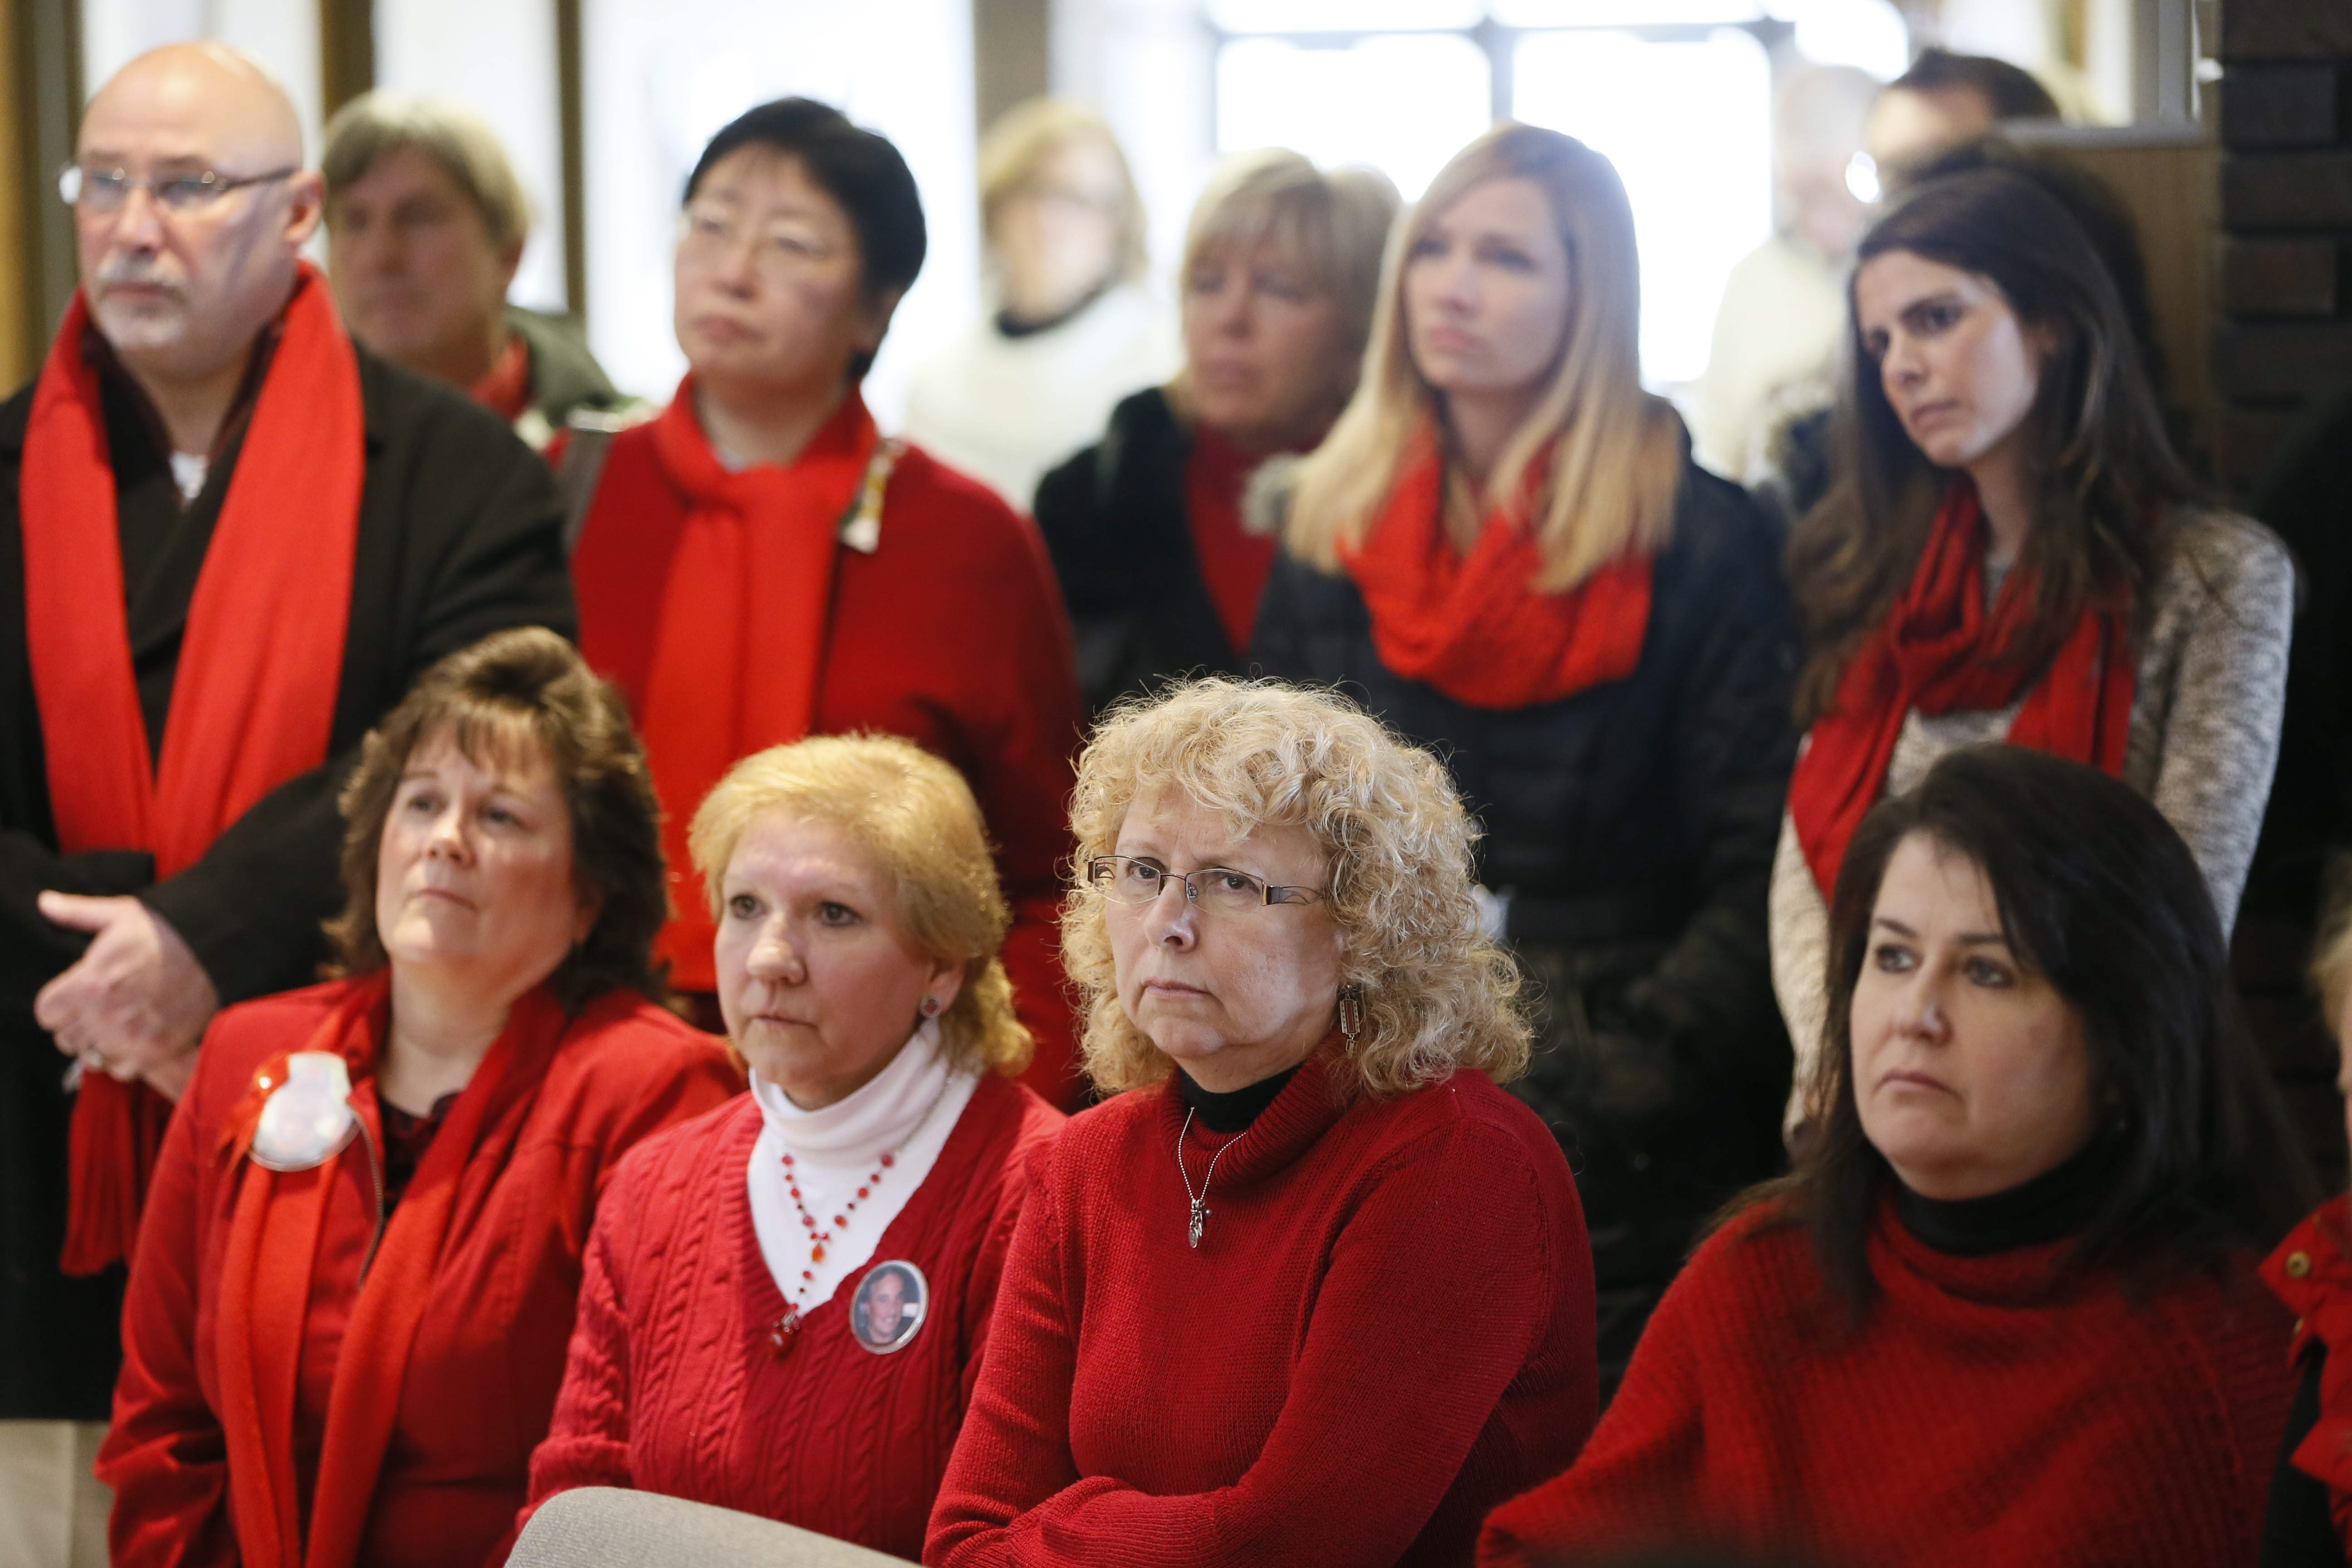 Members of the Families of Flight 3407 have fought to protect flight safety rules passed in the wake of the 2009 crash in Clarence Center. (Derek Gee/News file photo)